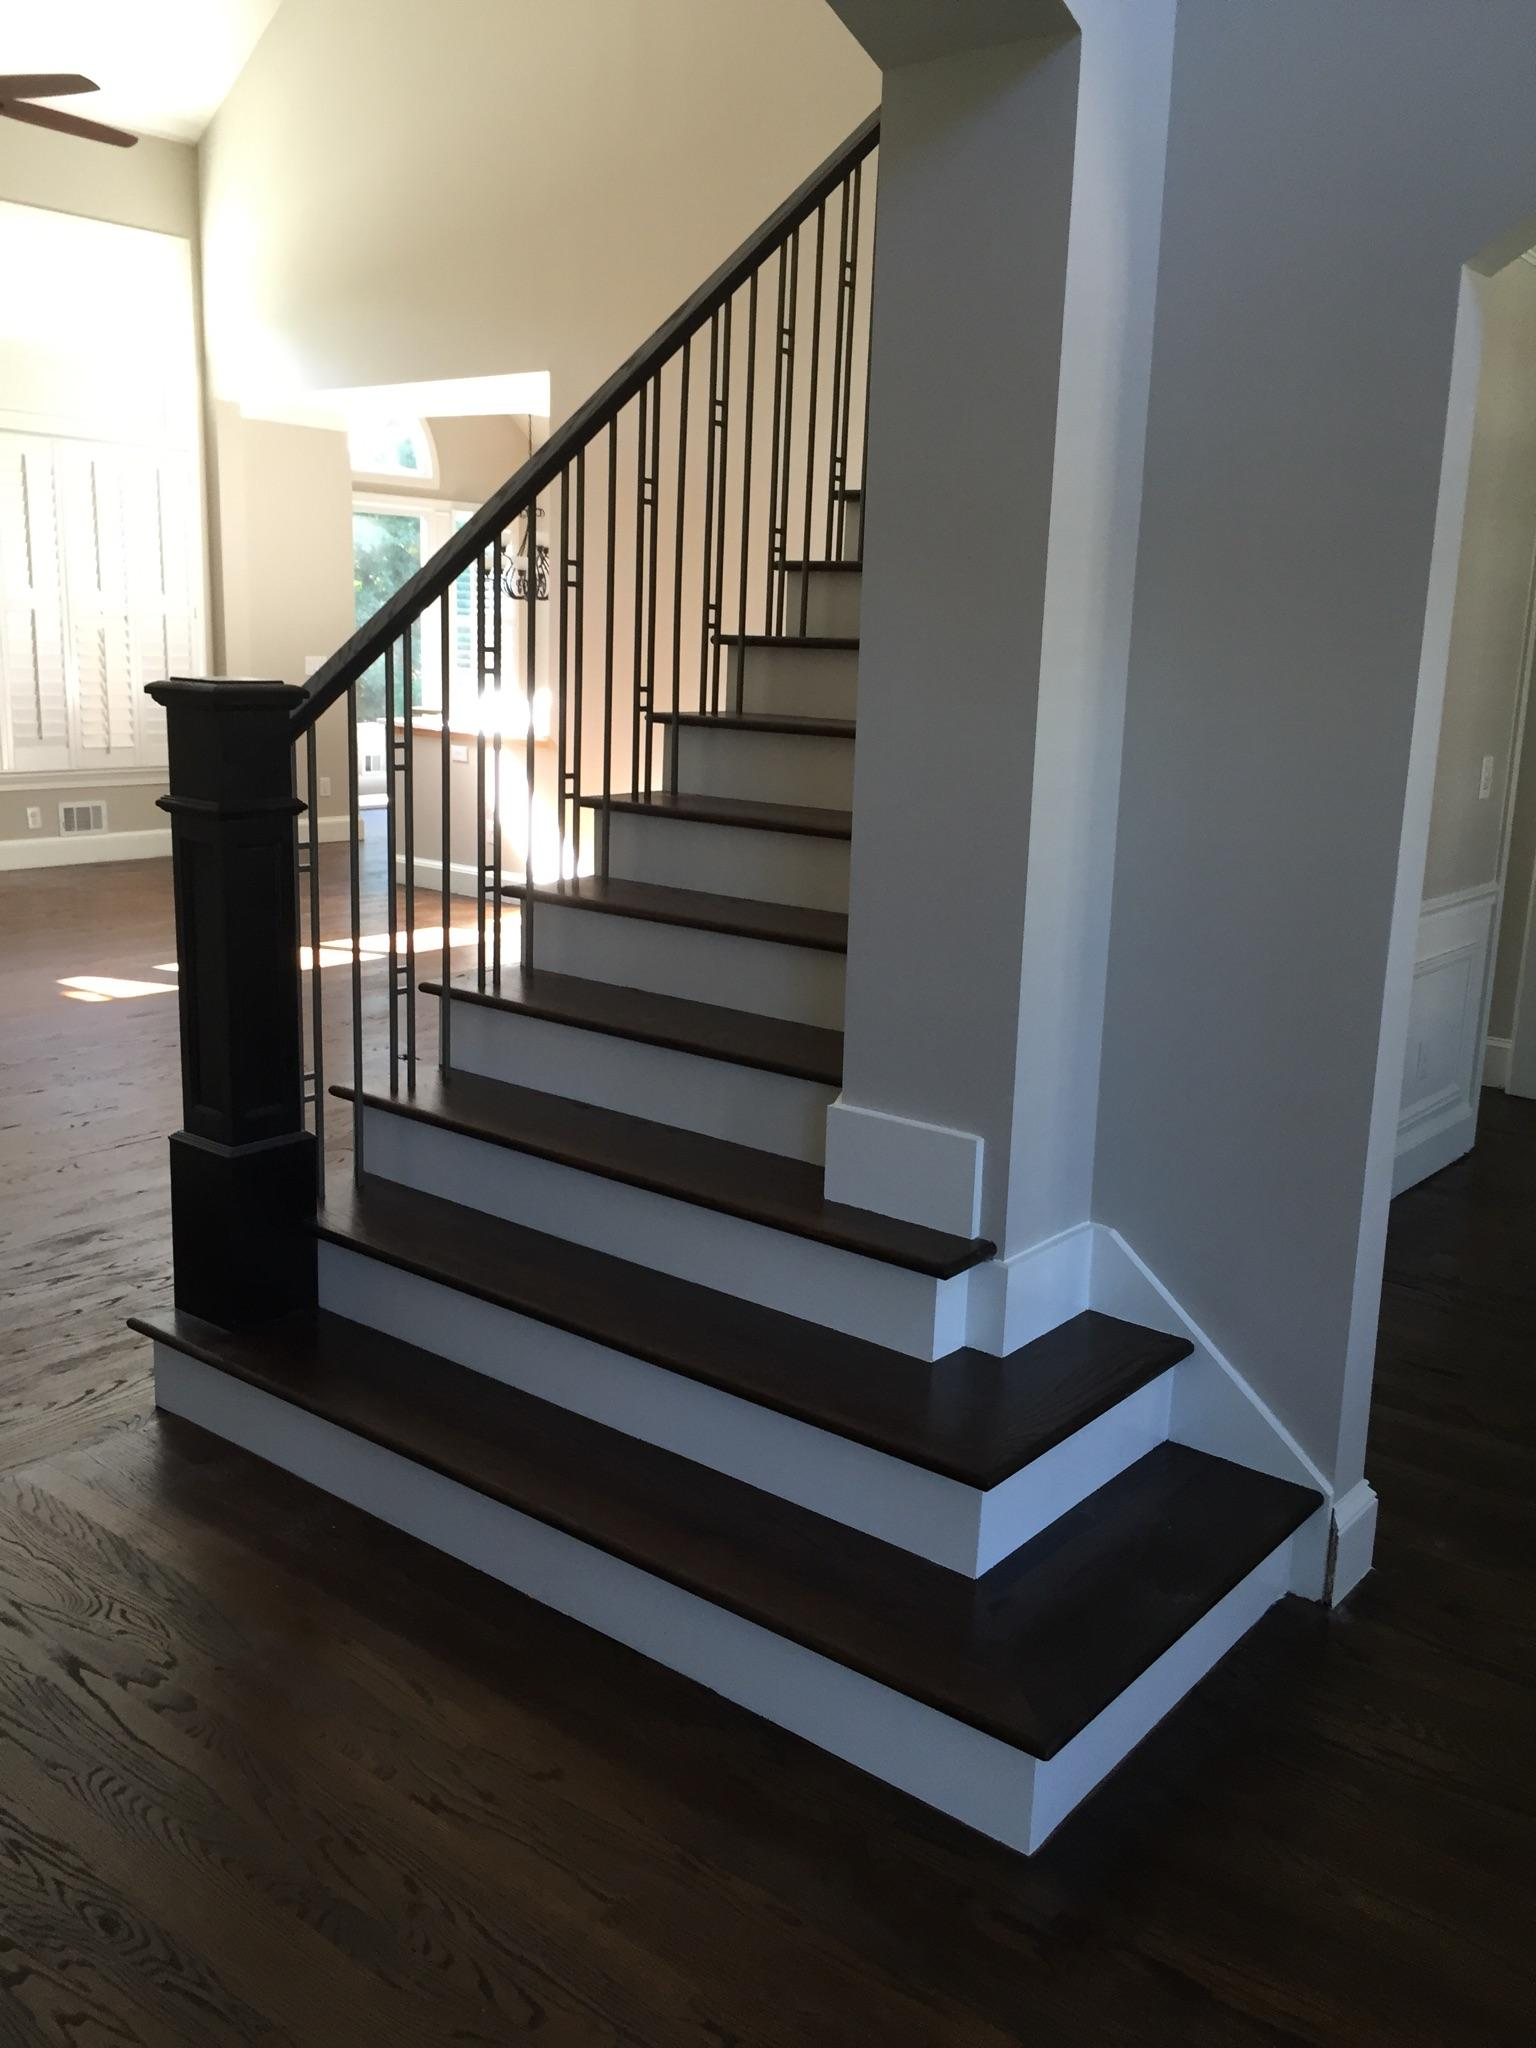 Beautiful Stairs: Safety Meets Style - Stair Solution